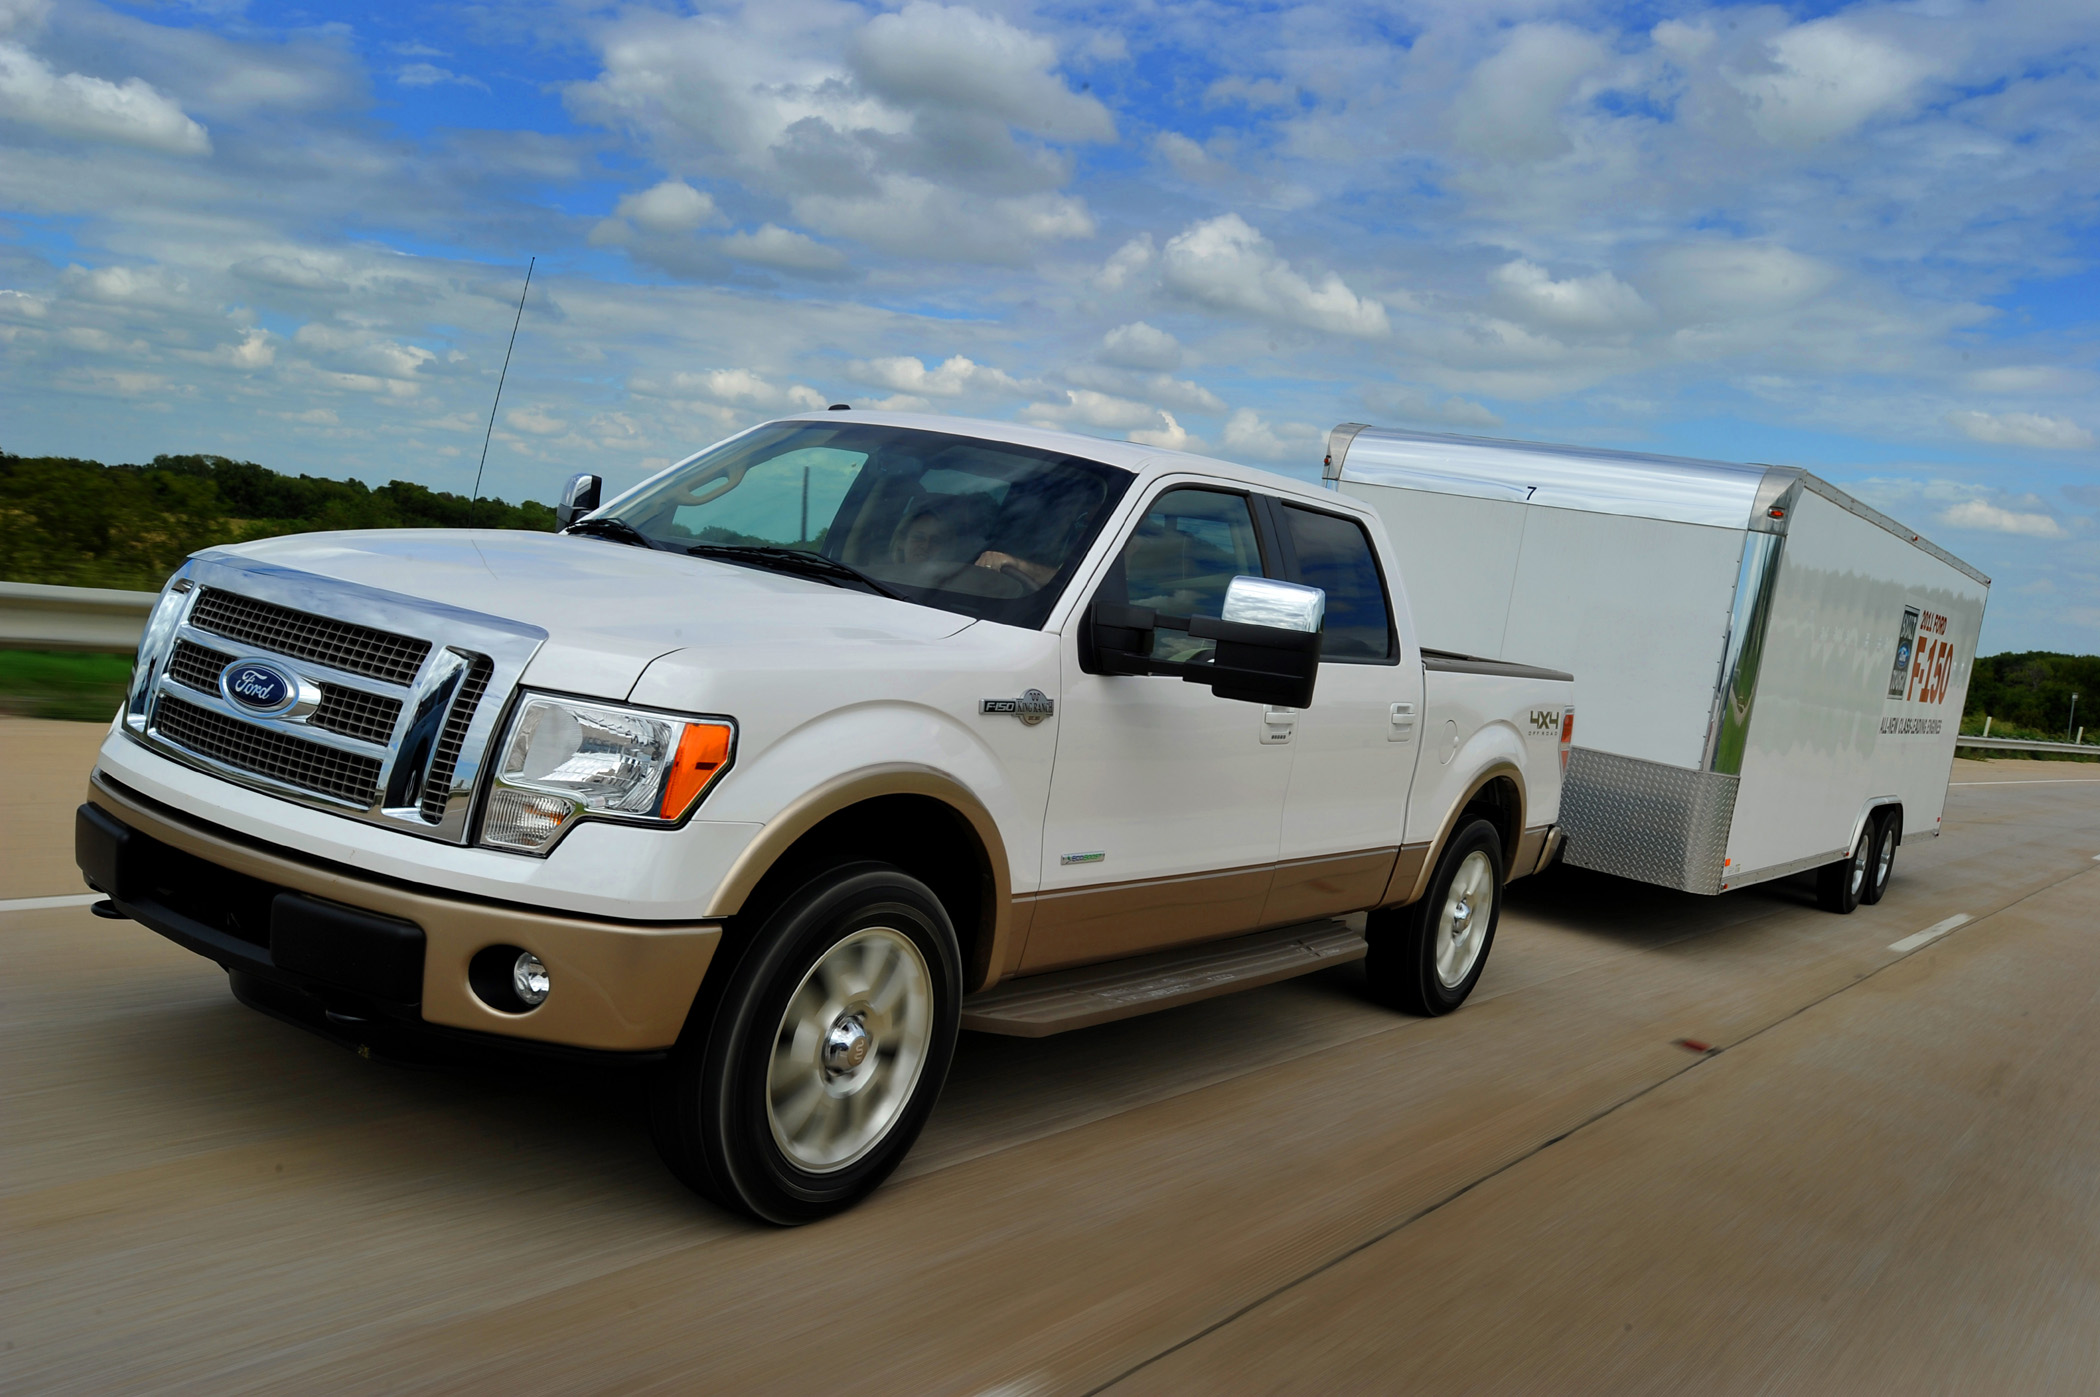 Manufacturer photo fords special edition king ranch f 150 supercrew 4x4 is offered